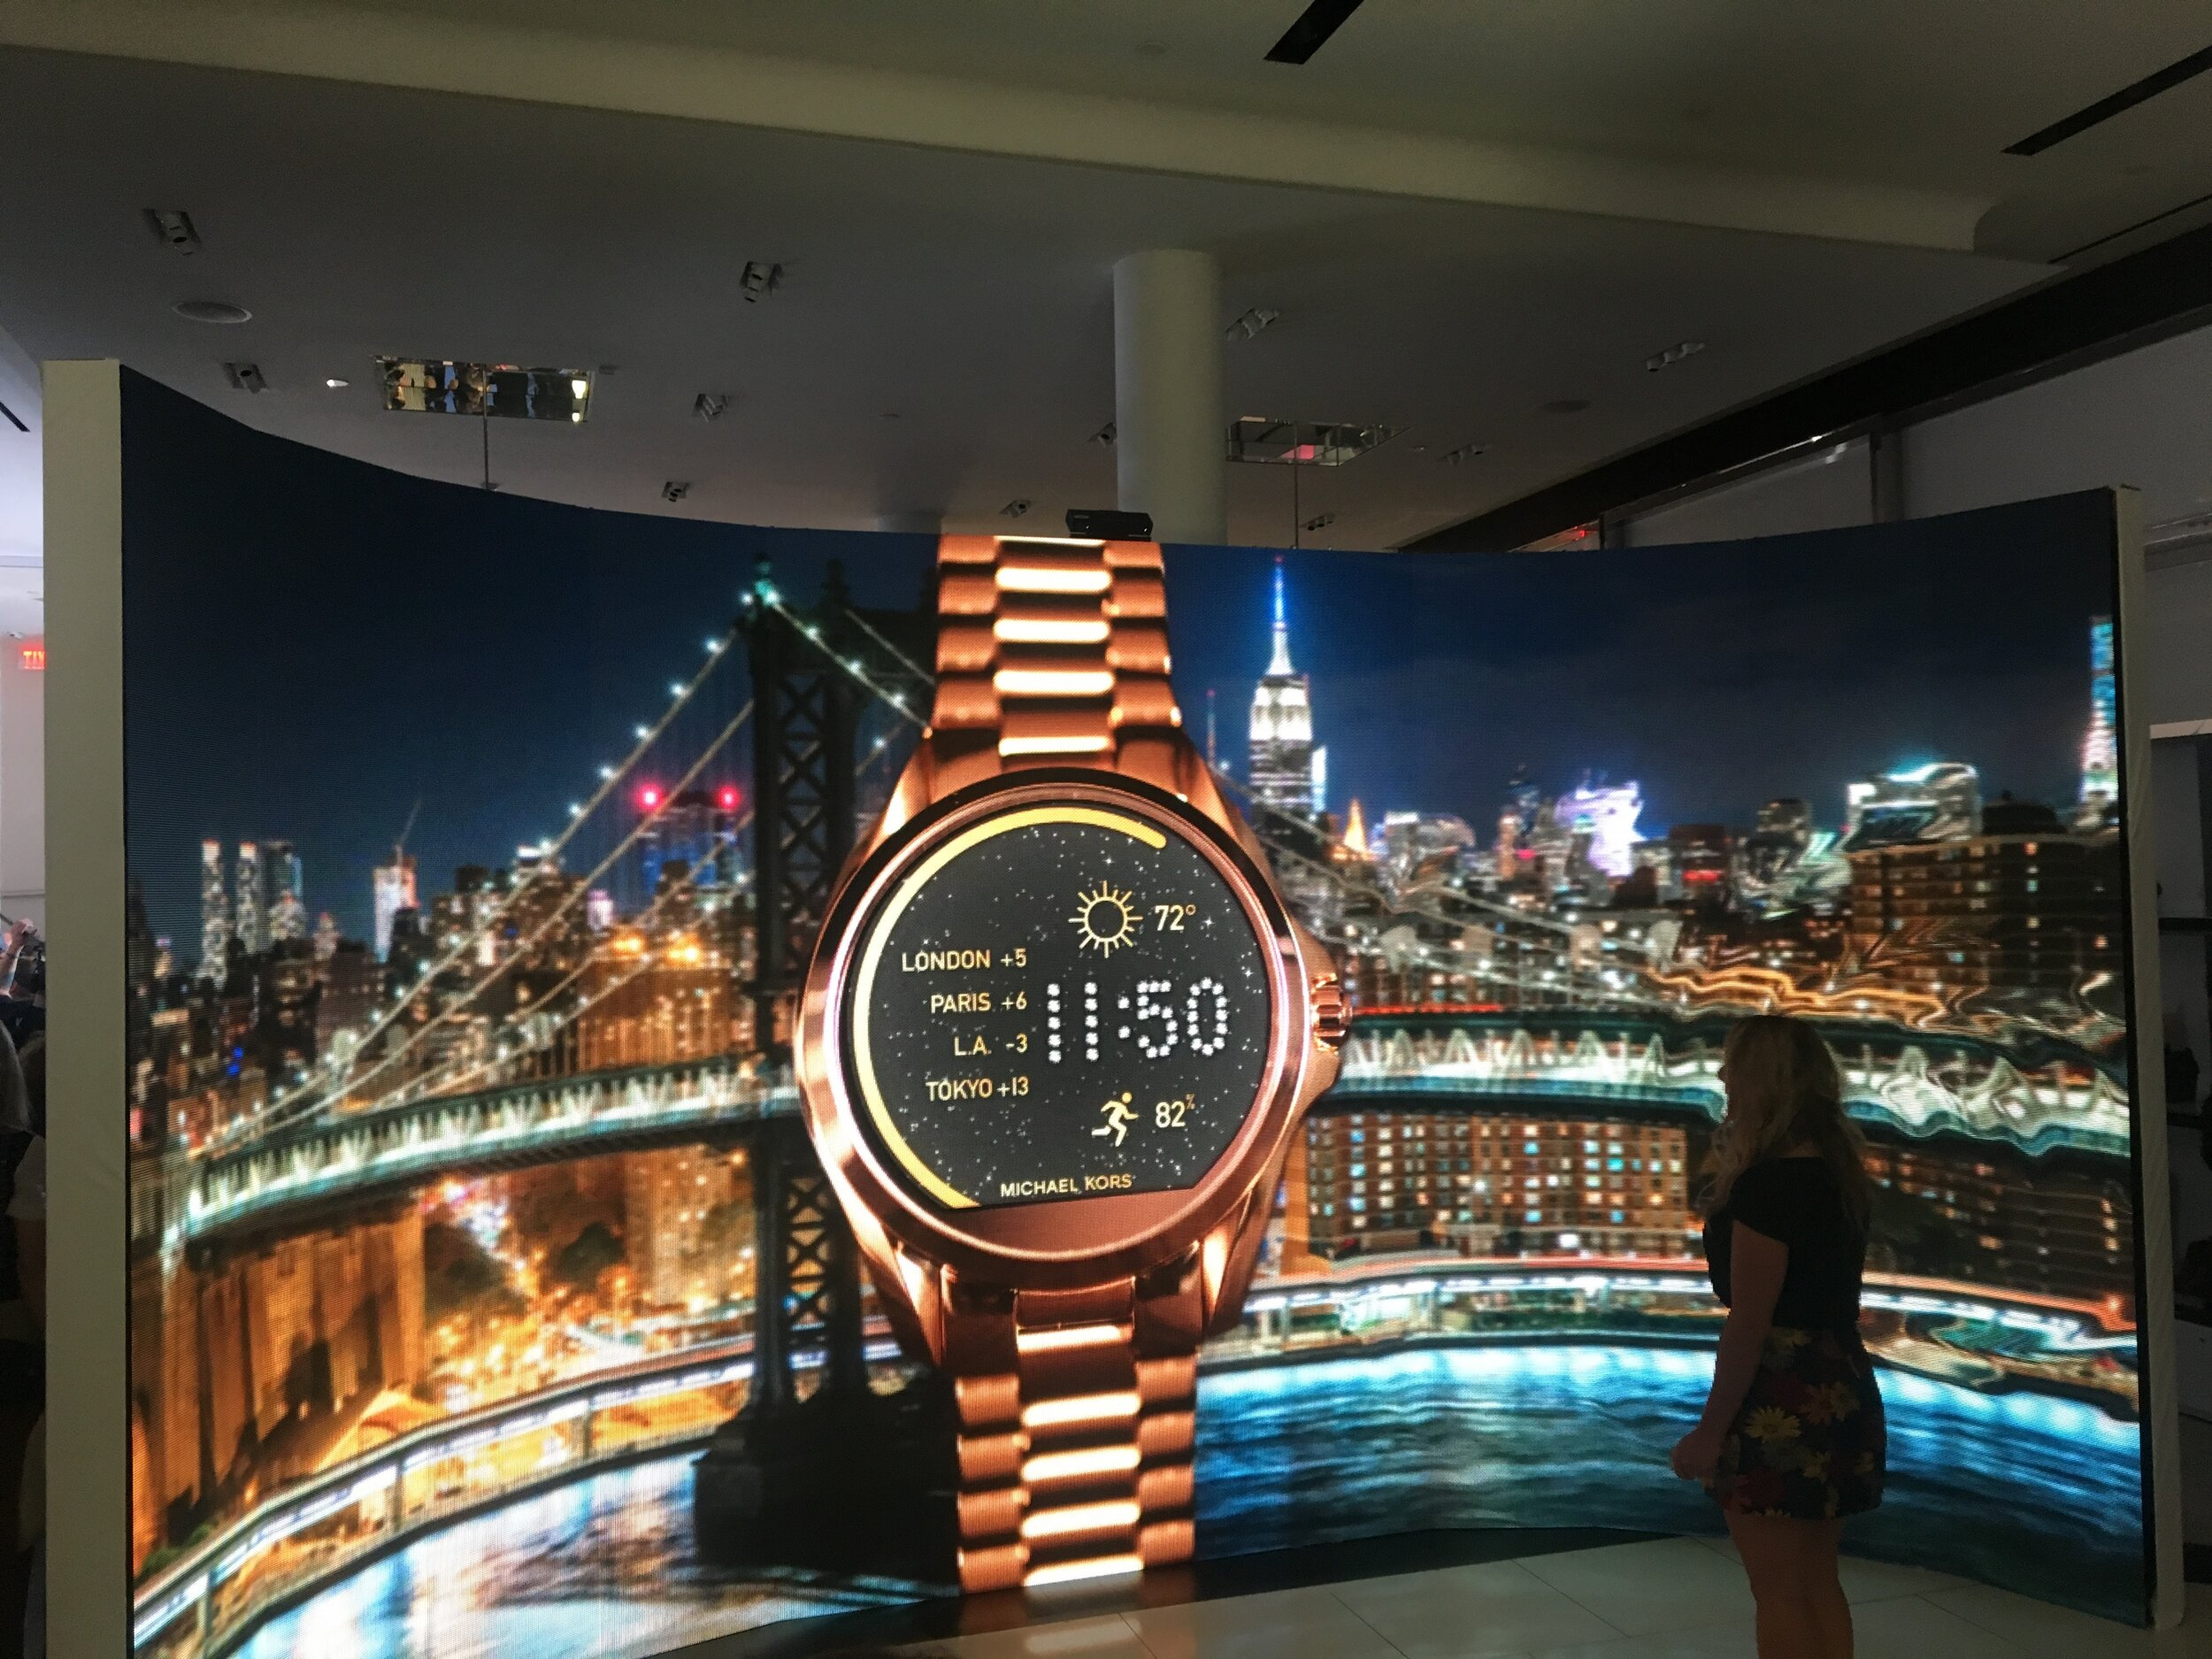 Michael Kors Broadway flagship store —Curved 16 ½' x 10' LED wall with motion control integration and custom surroundings. (Partner: Imaginex)